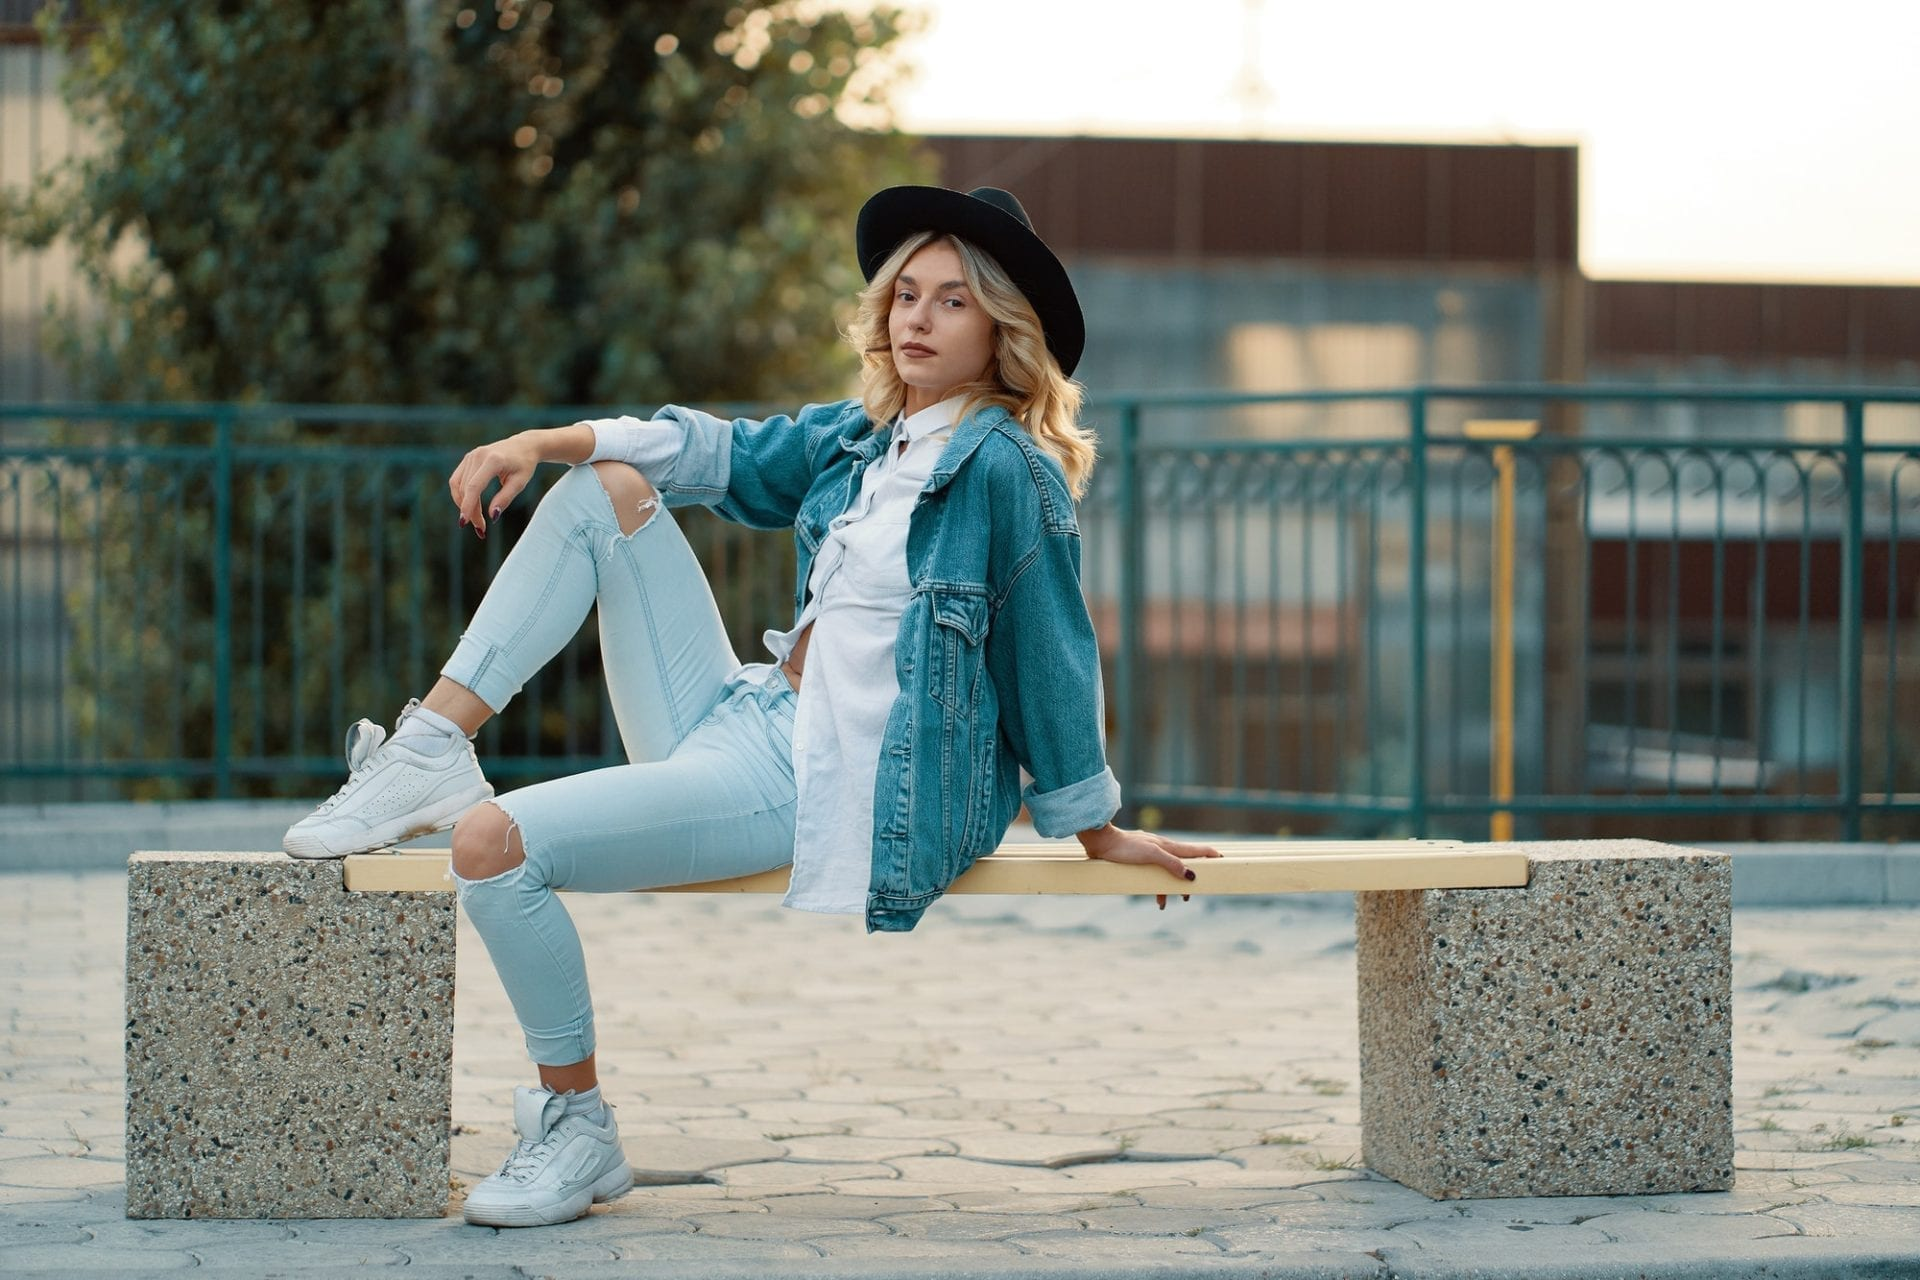 A modern, stylish girl posing while sitting on a minimal city be